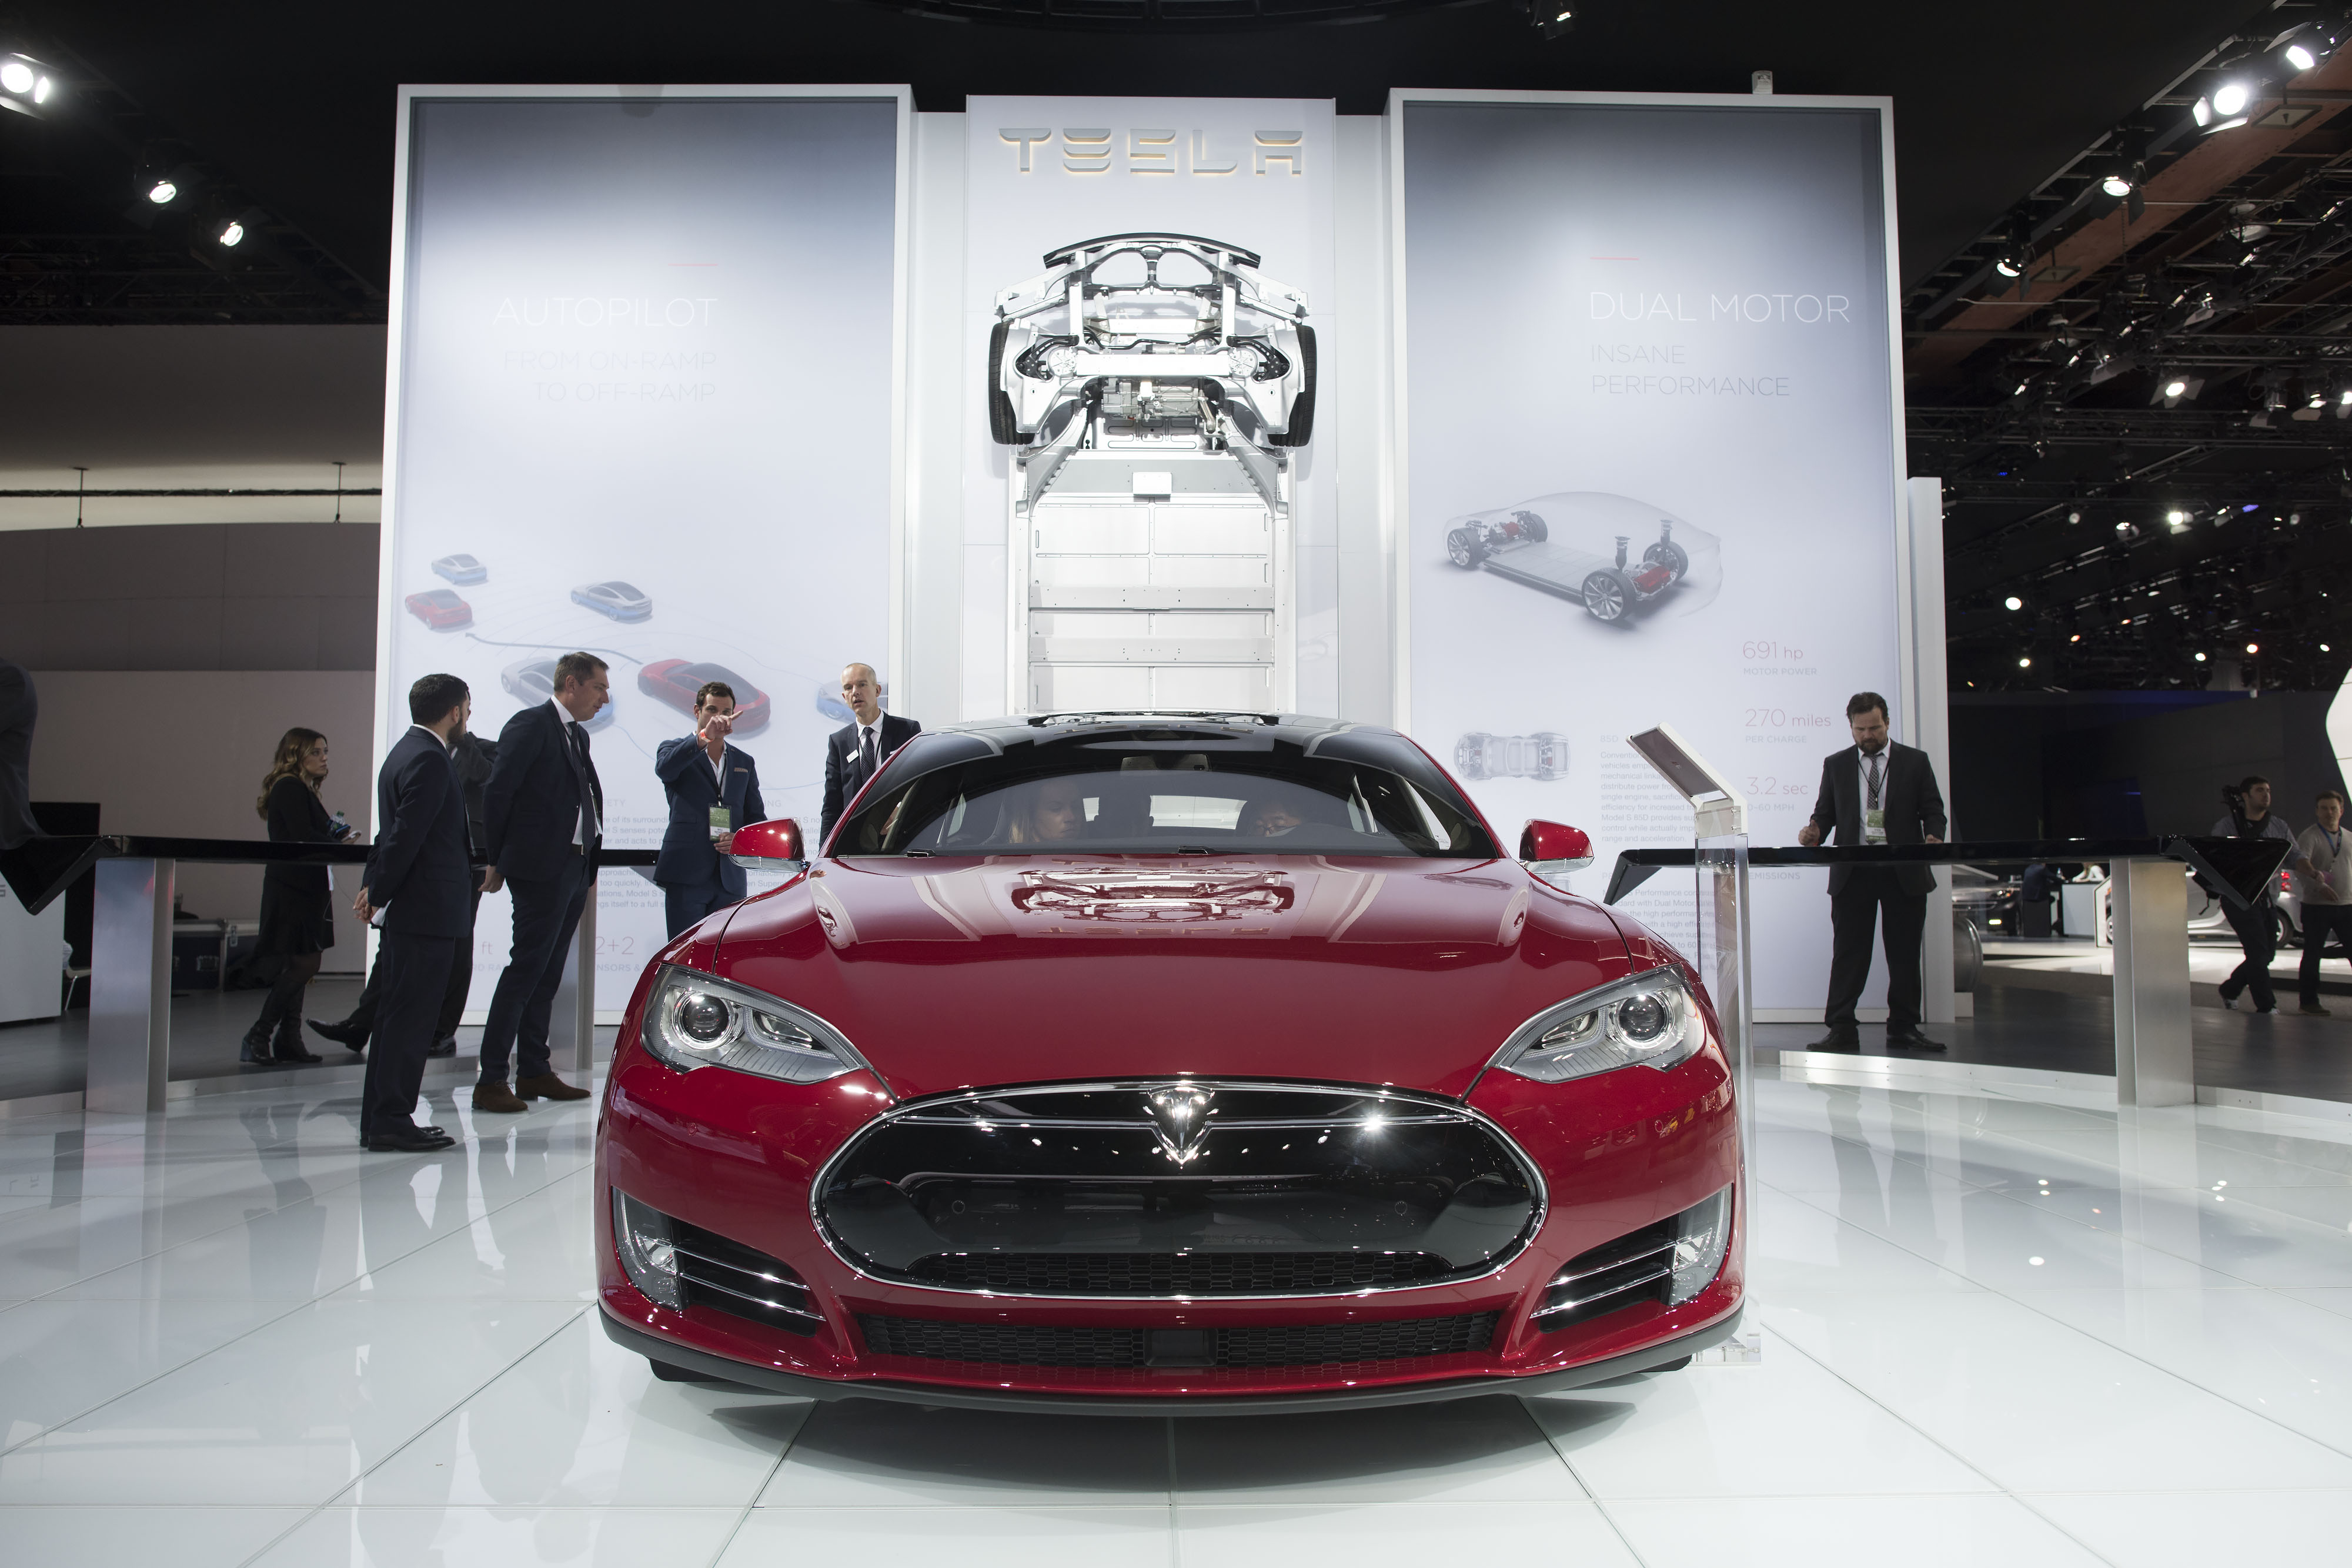 A Tesla Motors Inc. Model S P85D vehicle is displayed at the 2015 North American International Auto Show (NAIAS) in Detroit on Jan. 12, 2015.